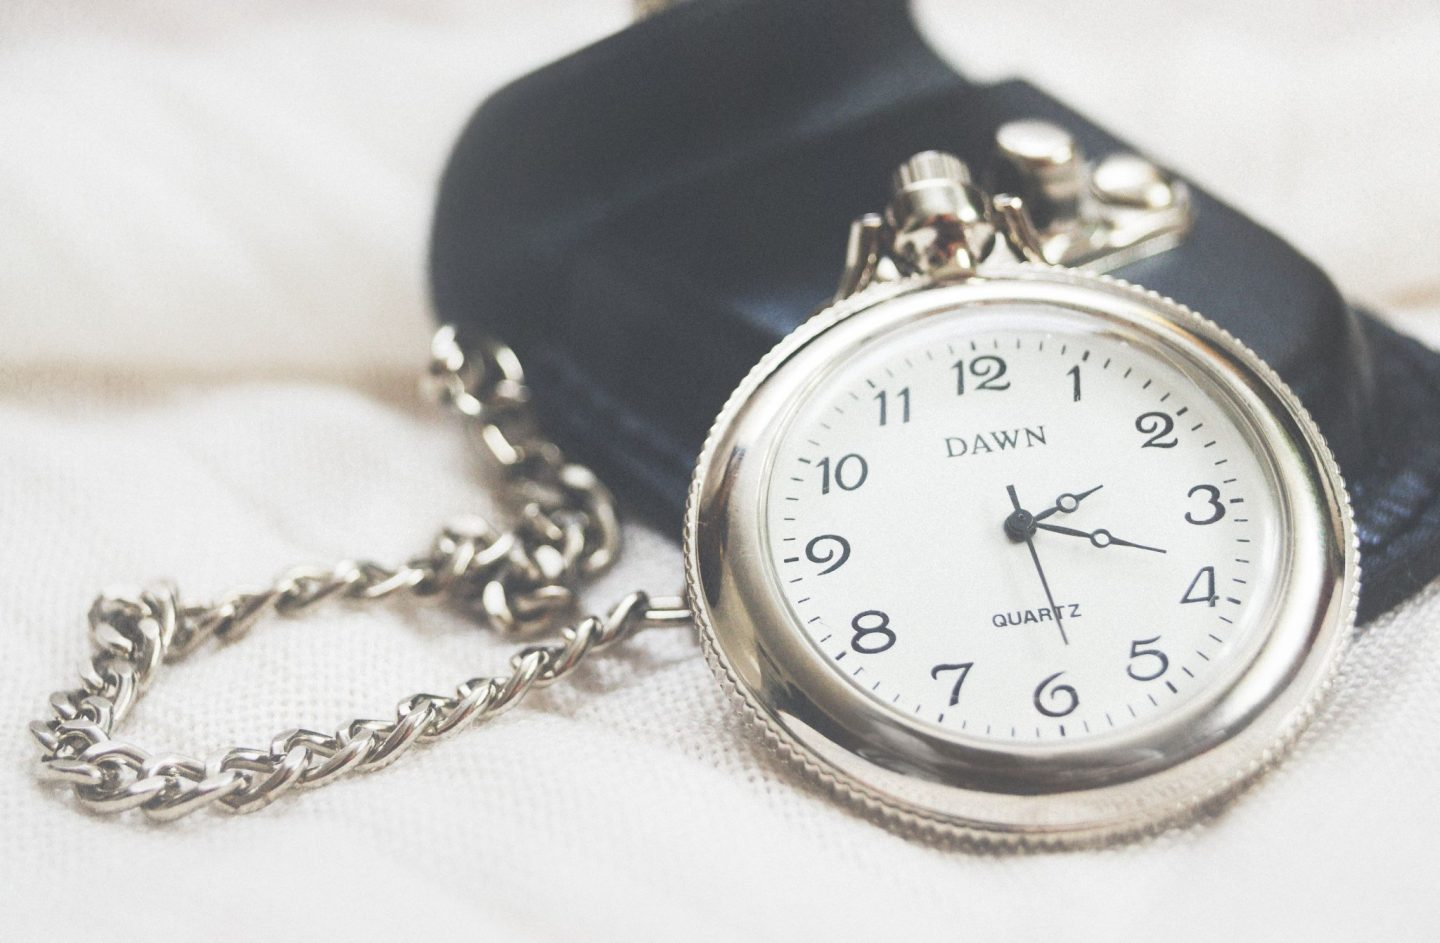 , Style:  Pocket Watches- Telling More Than Just the Time